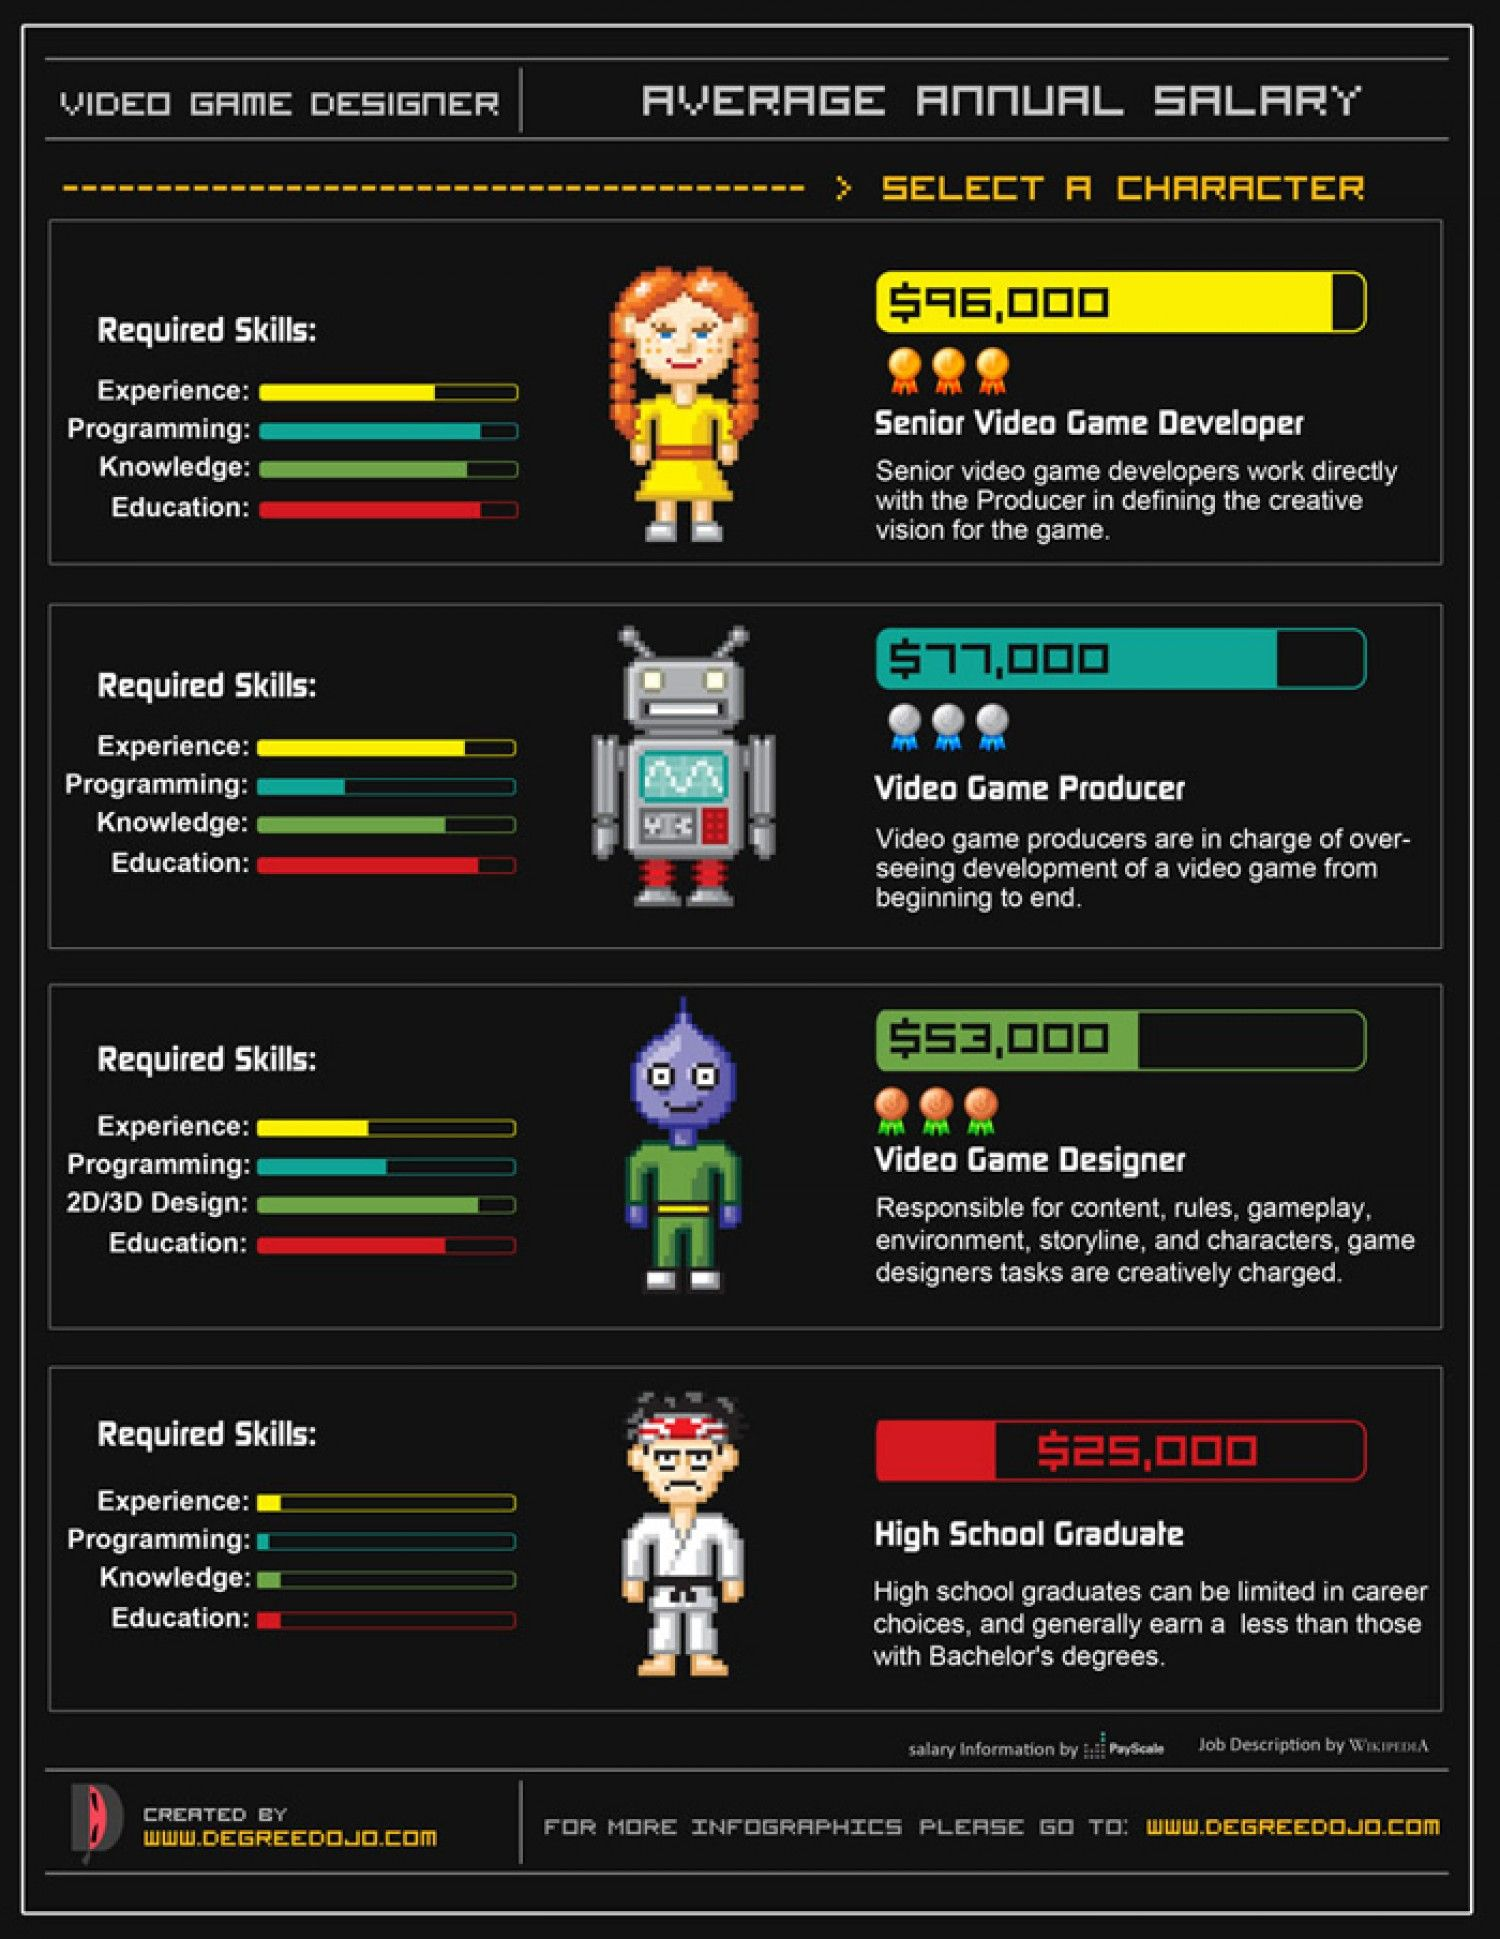 Pin By Game Girl On Inforgraphic Games Boread Video Game Design Game Design Video Game Tester Jobs,Creative Graphic Design Creative A Logo Images